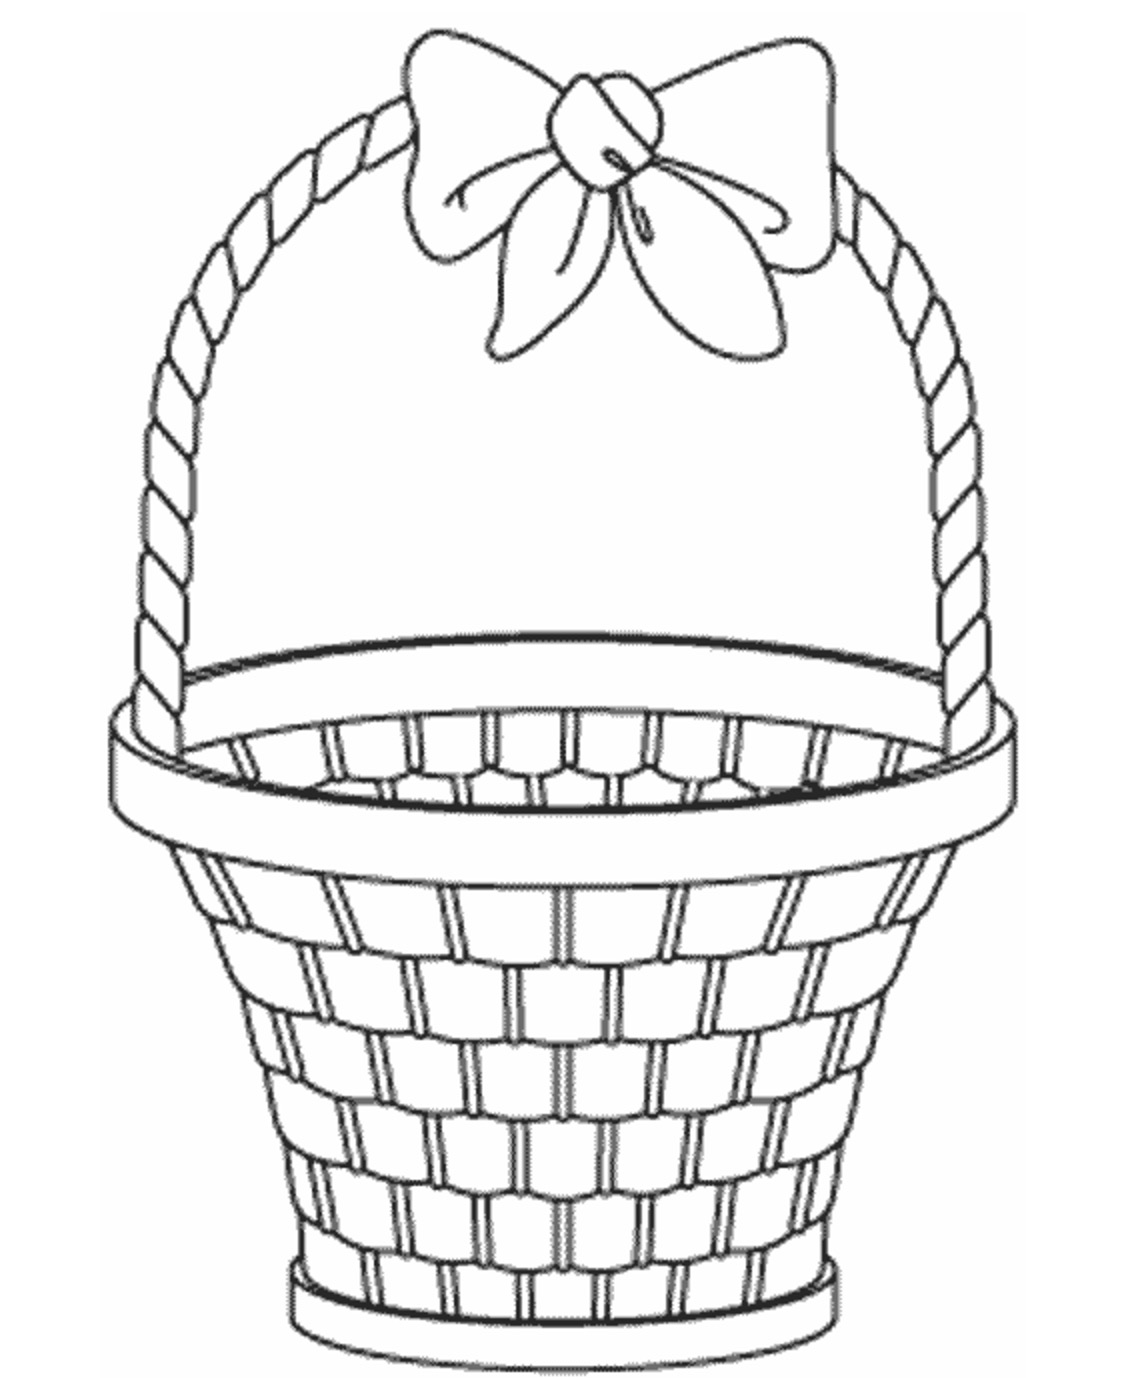 basket drawing picnic basket vector at getdrawings free download drawing basket